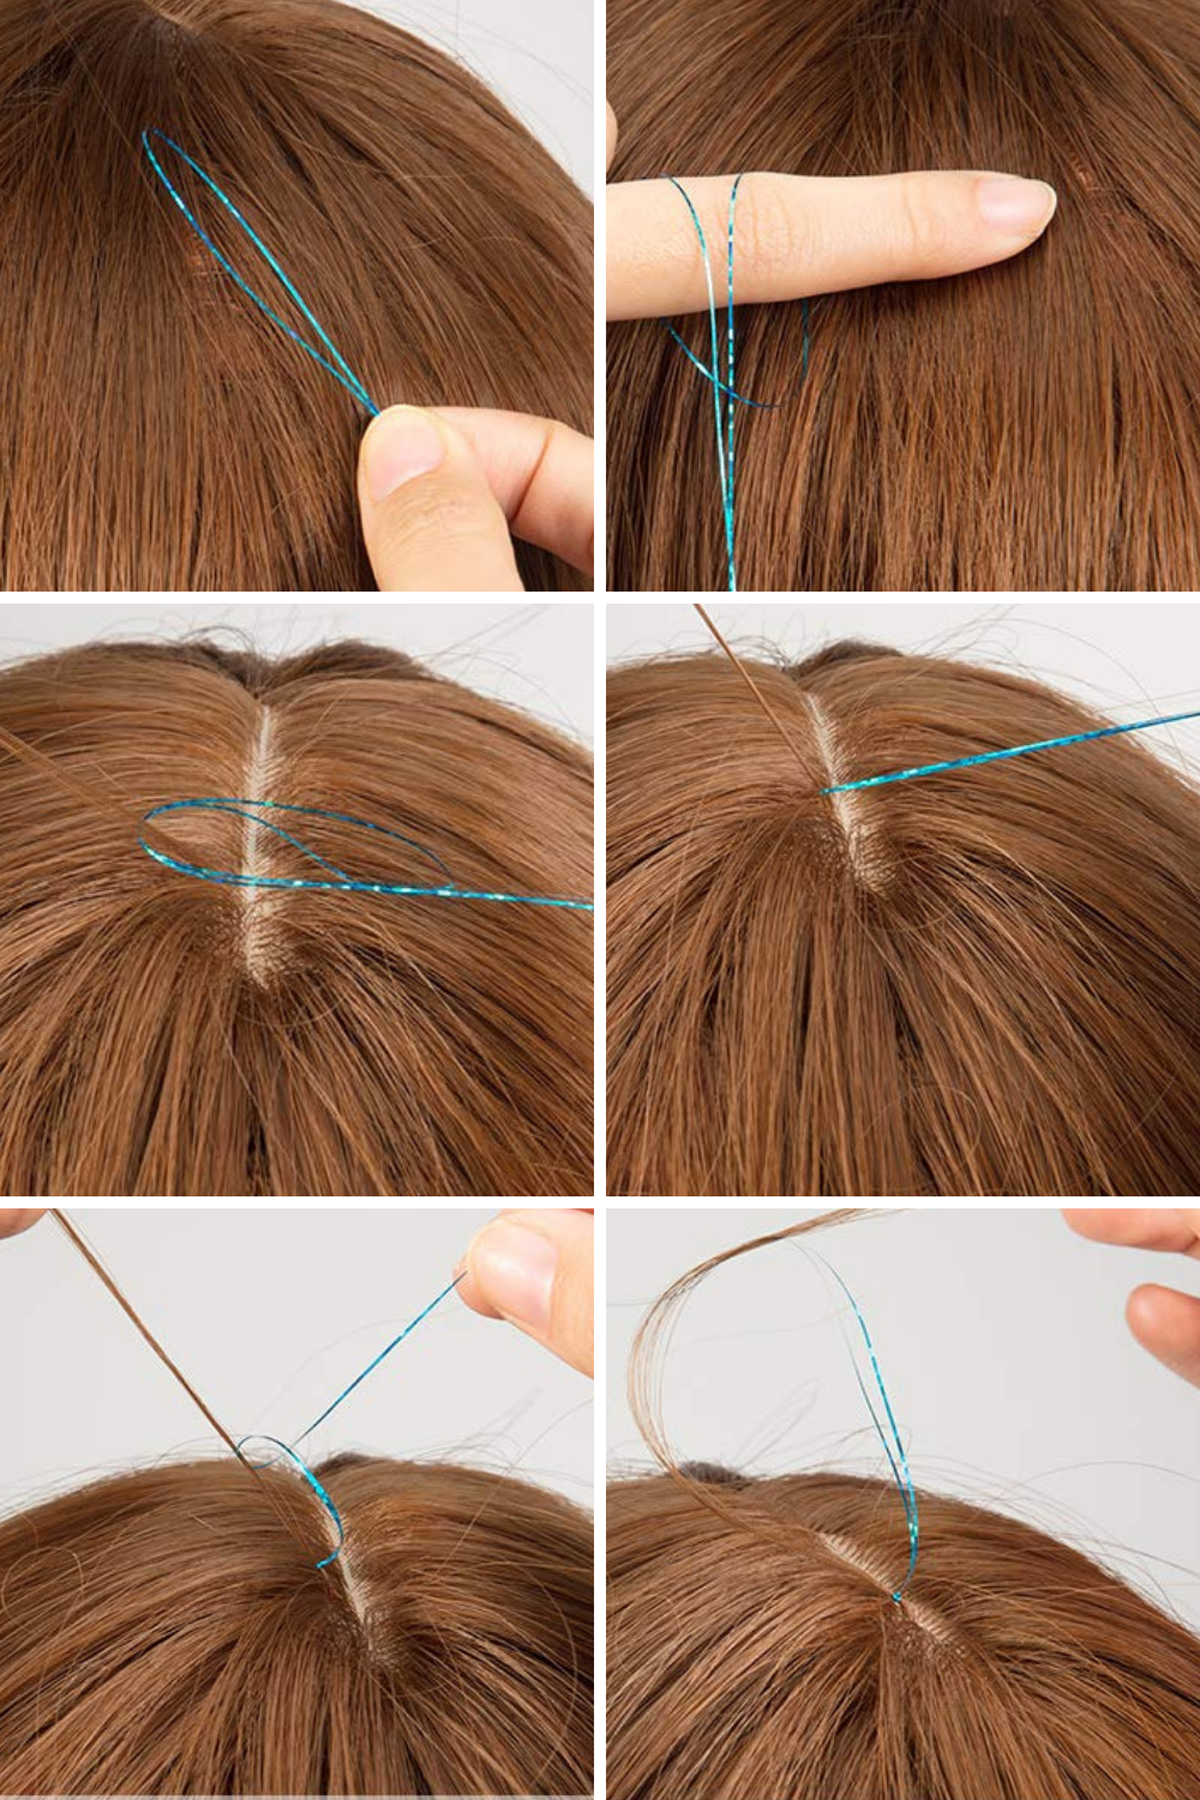 How to Put In Tinsel Hair Extensions